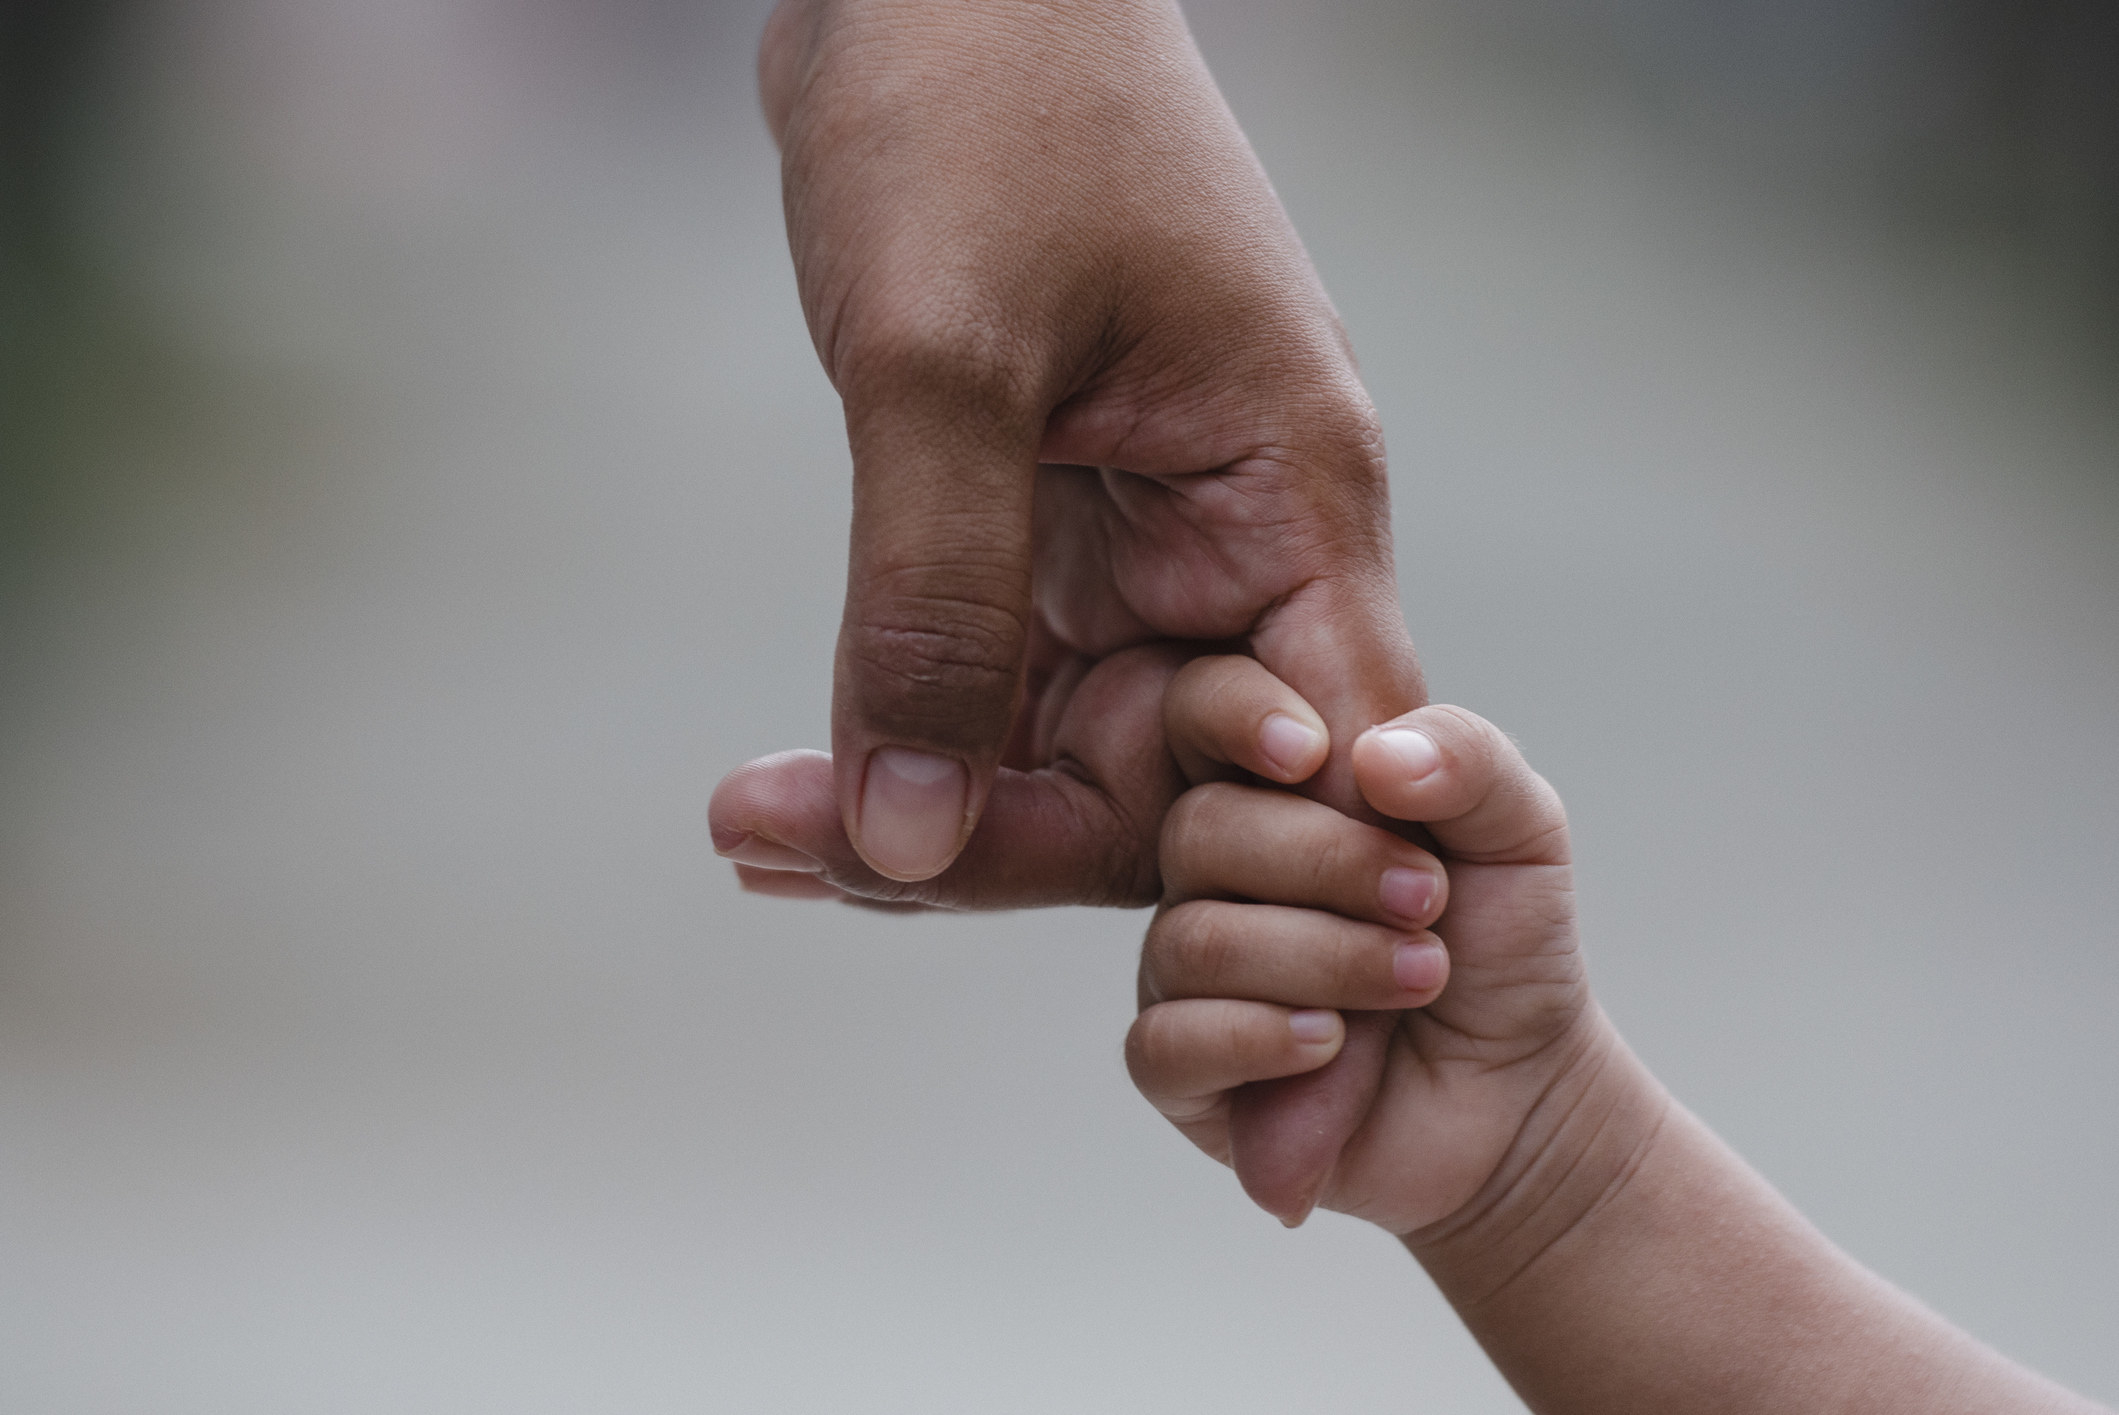 A child grips onto a parents hand tightly, not letting go